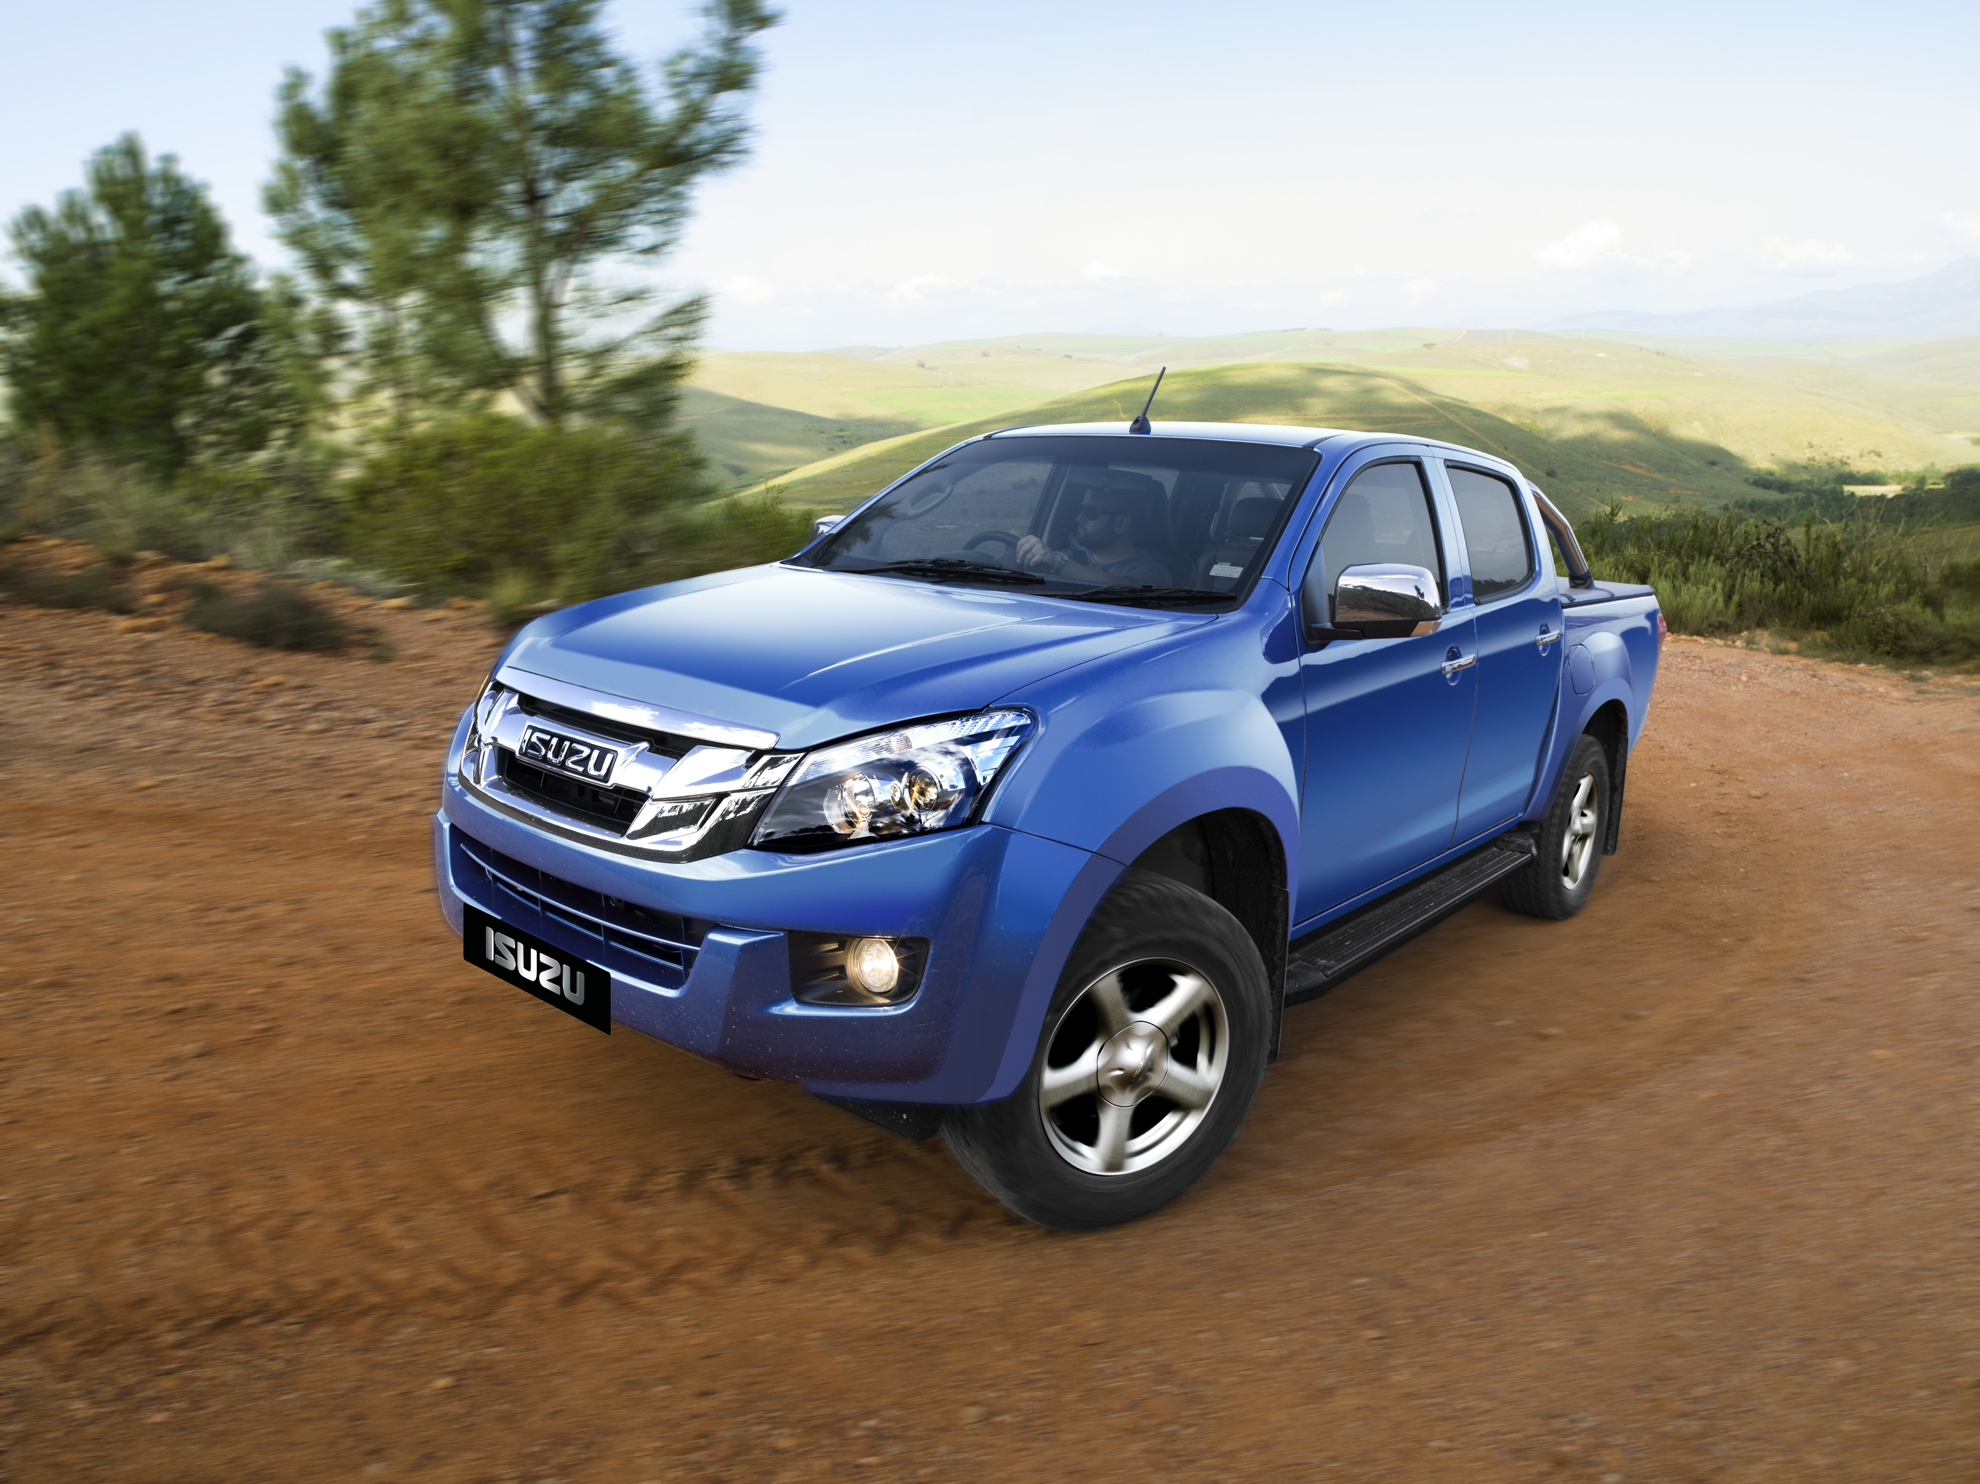 Isuzu Kb 2014 Enhancements